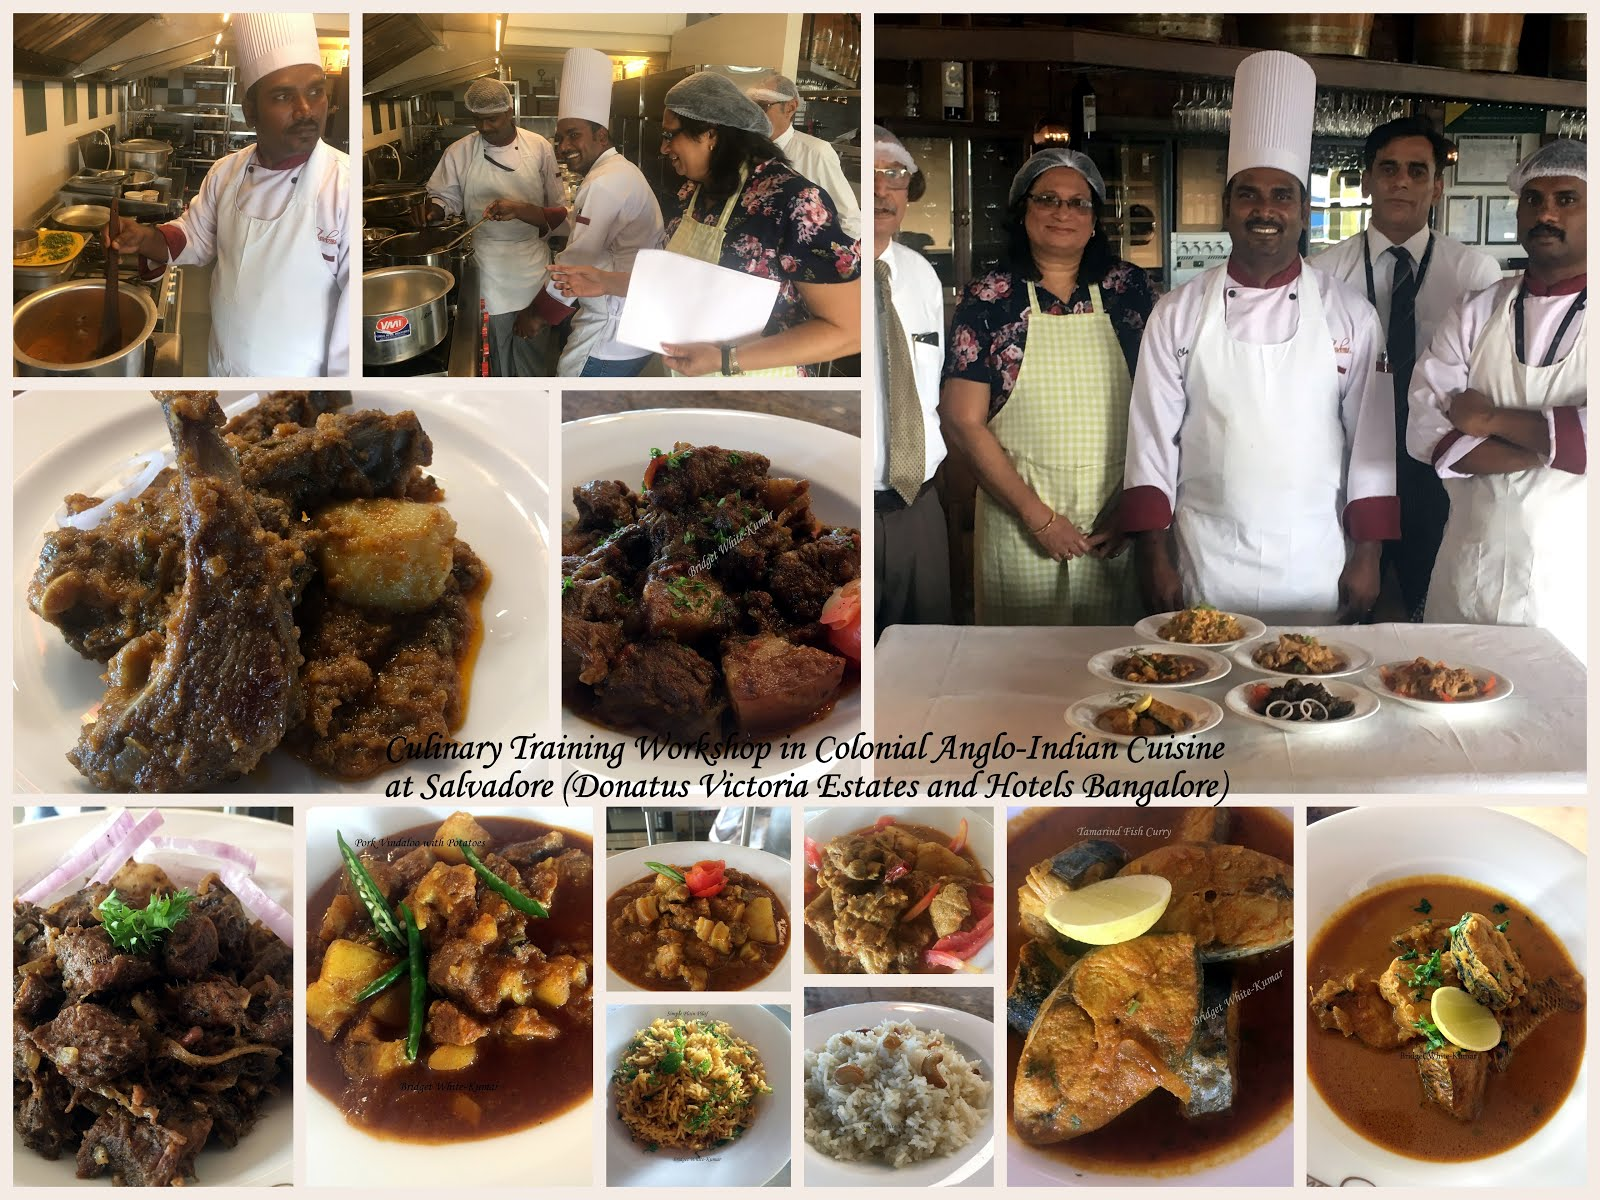 Conial Anglo-Indian Cuisine training workshop at Salvadore, Donatus Victoria, Bangalore